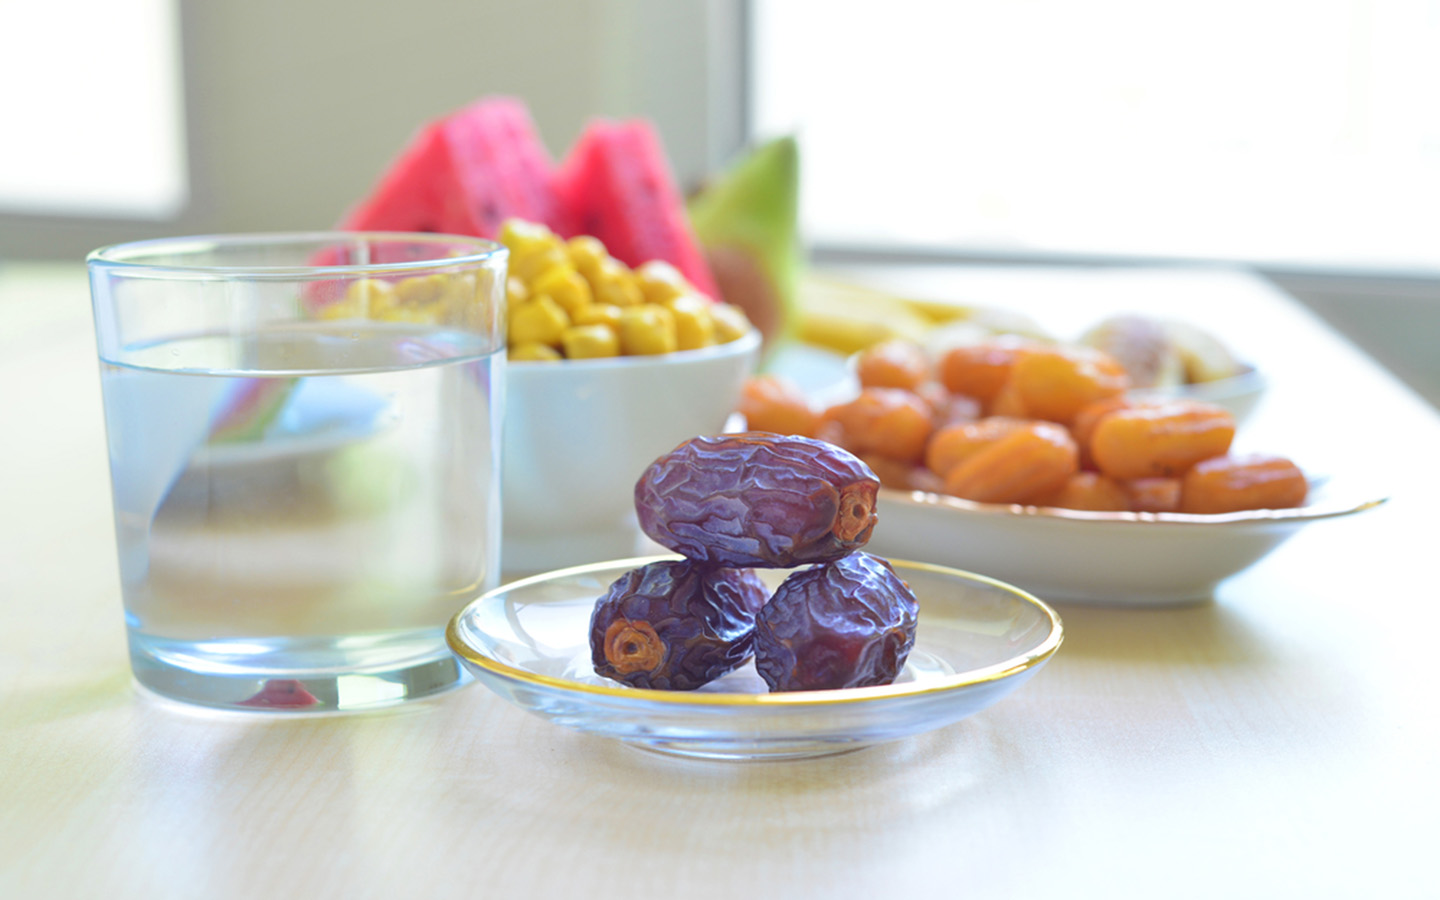 Water and fruits lying on the table